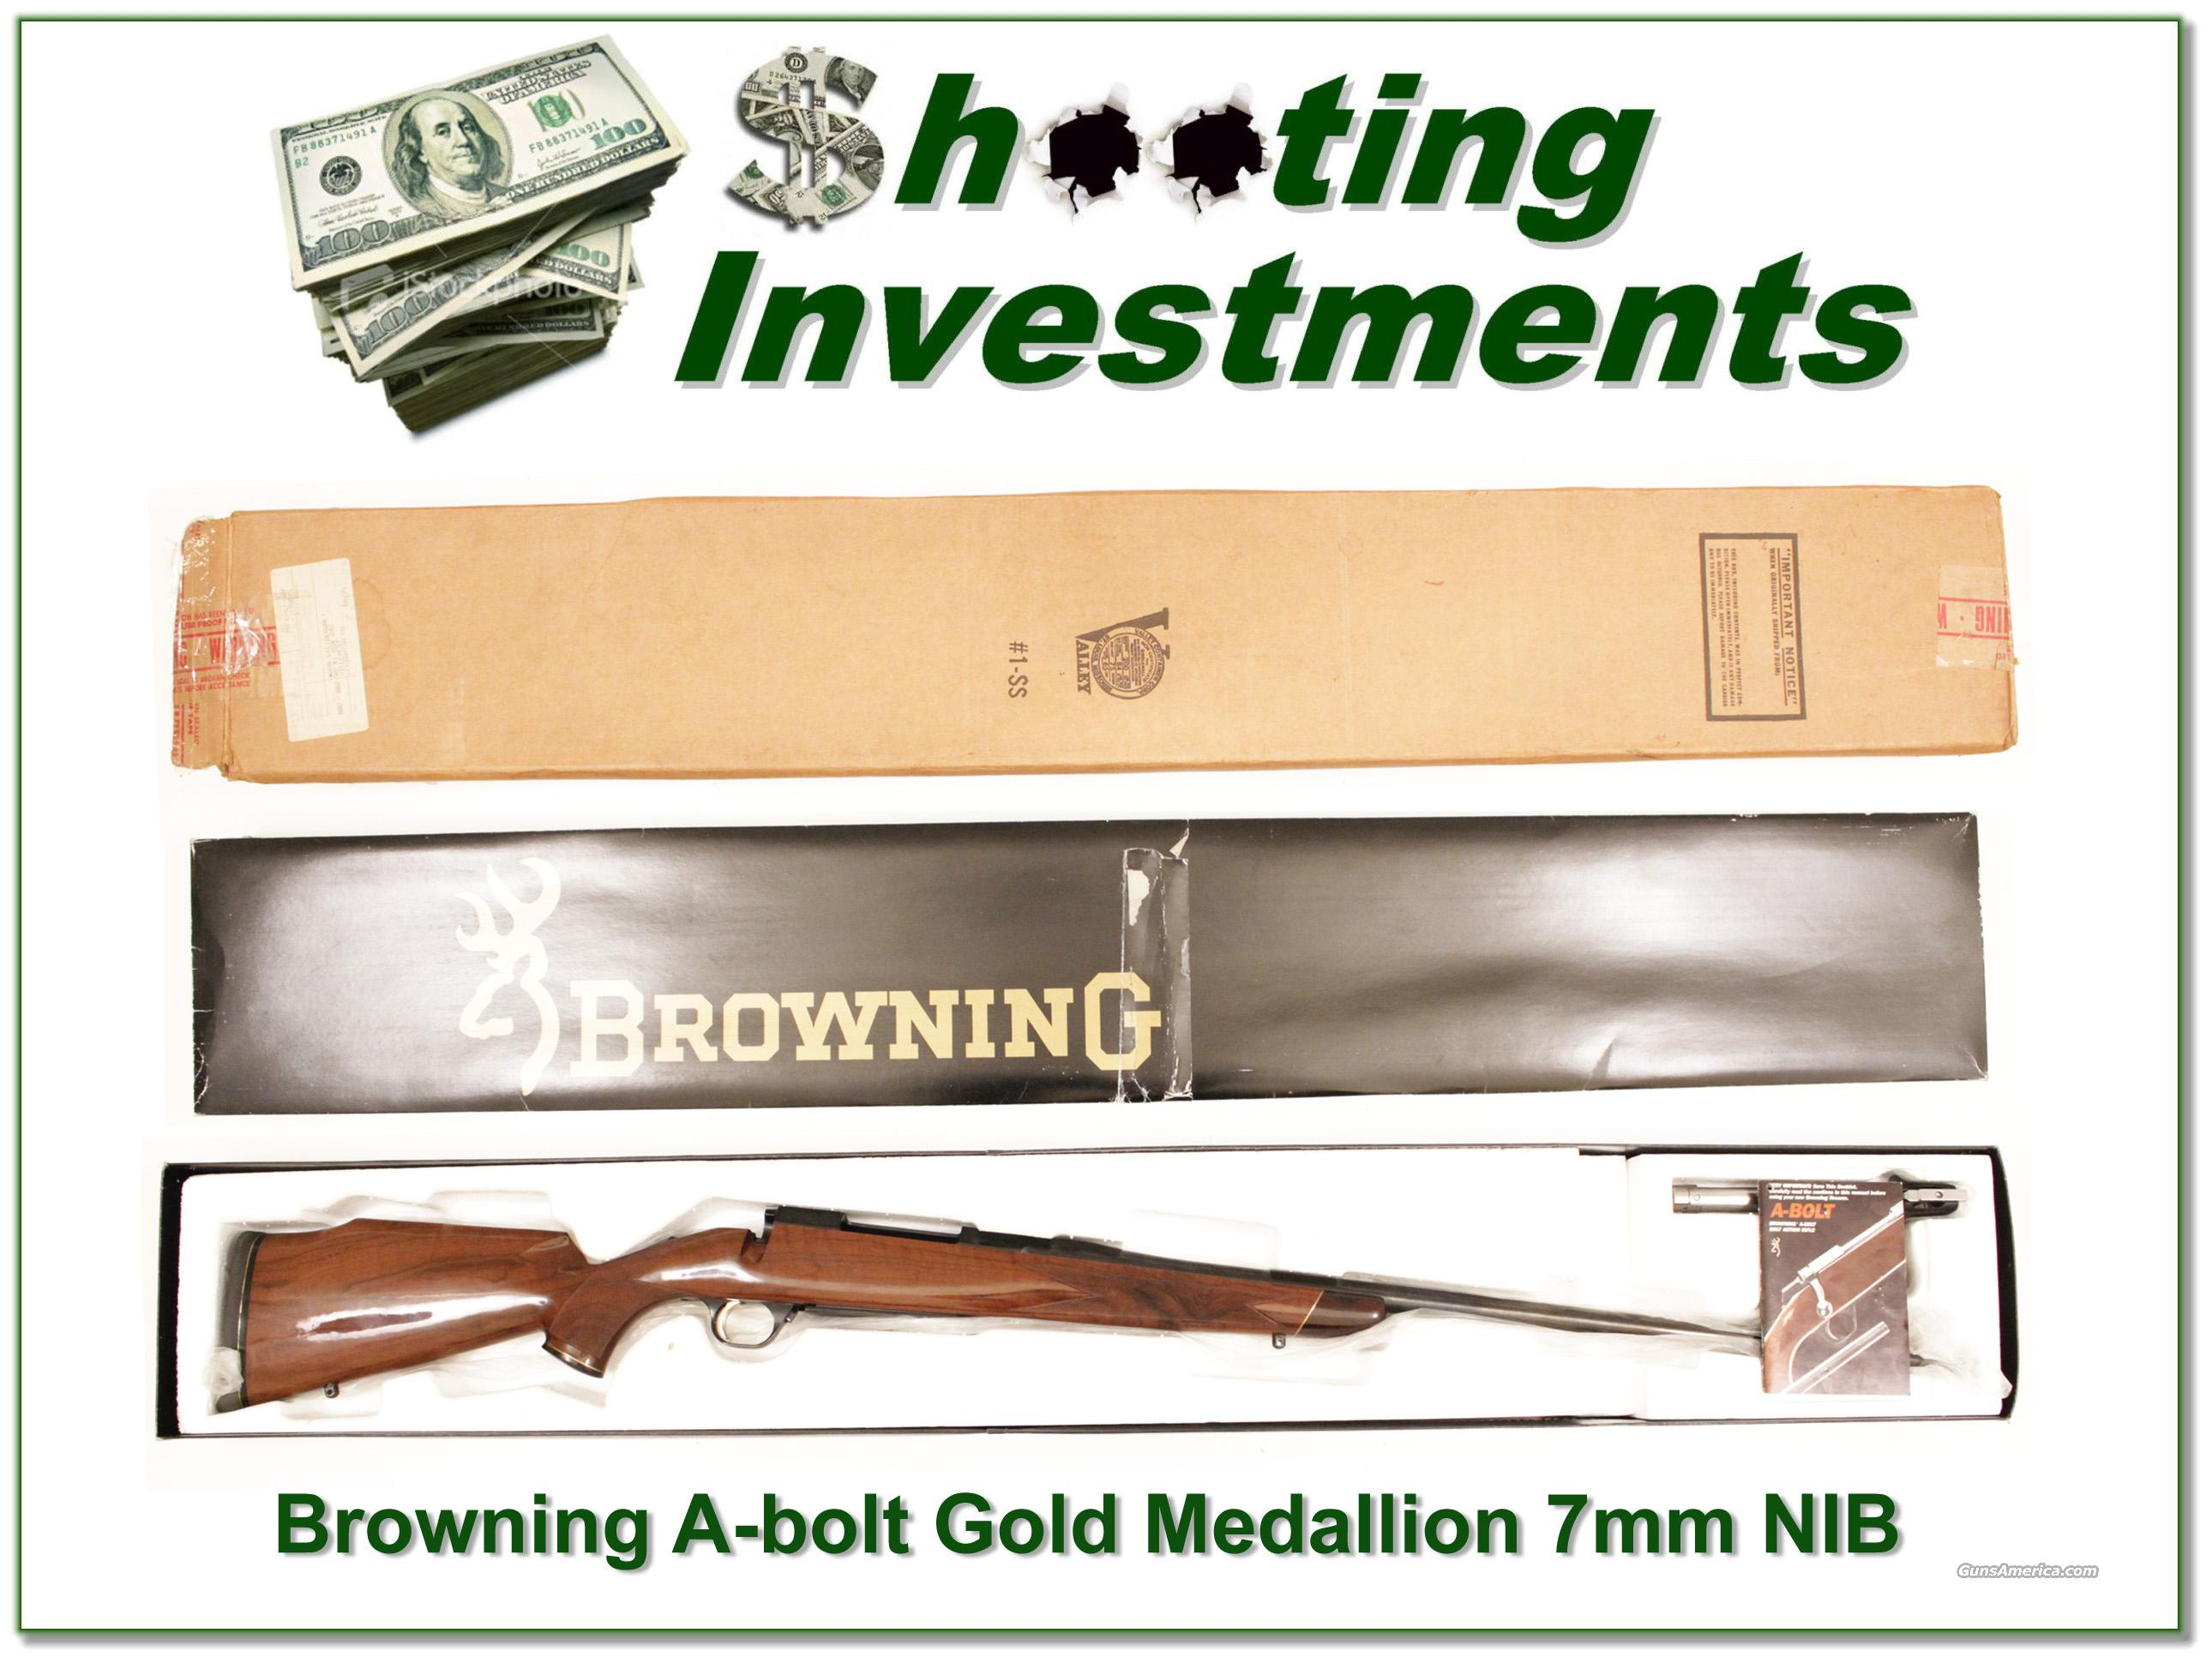 Browning A-bolt 1989 Gold Medallion 7mm NIB  Guns > Rifles > Browning Rifles > Bolt Action > Hunting > Blue